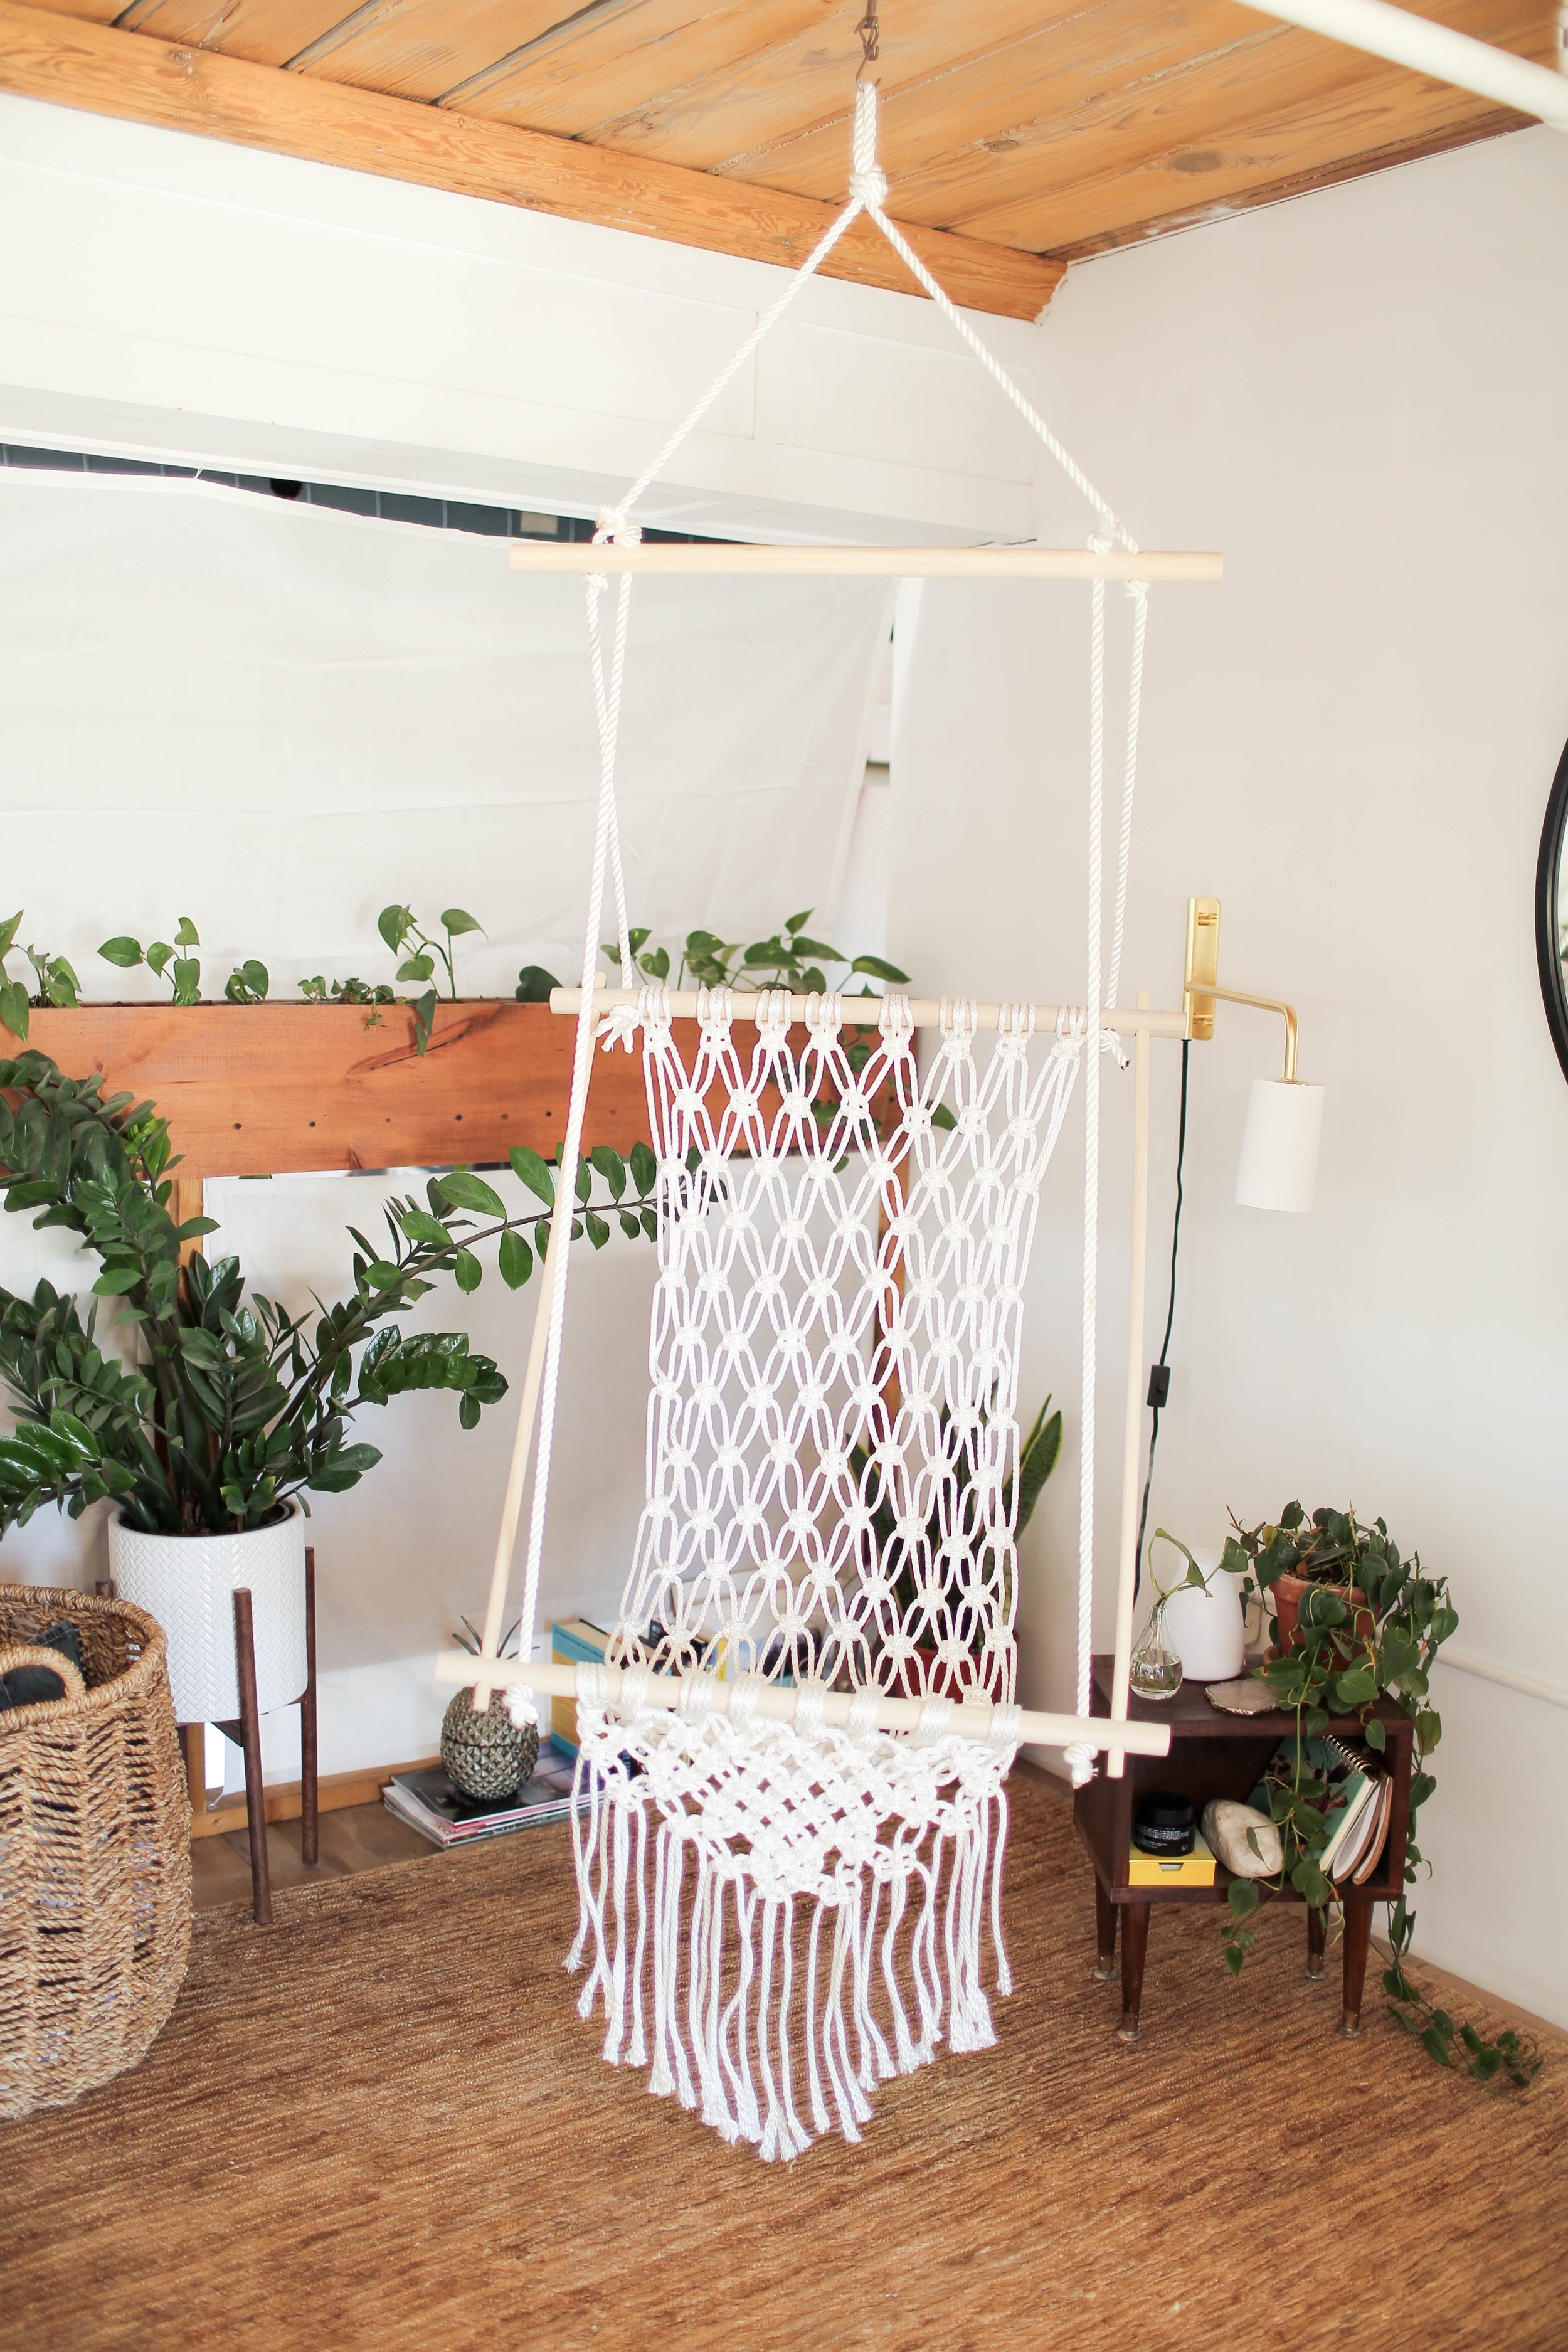 how to make a hanging chair white and half diy macrame the sorry girls if you be sure send us photo on instagram thesorrygirls using hashtag sorrygirlssquad also check out video below for